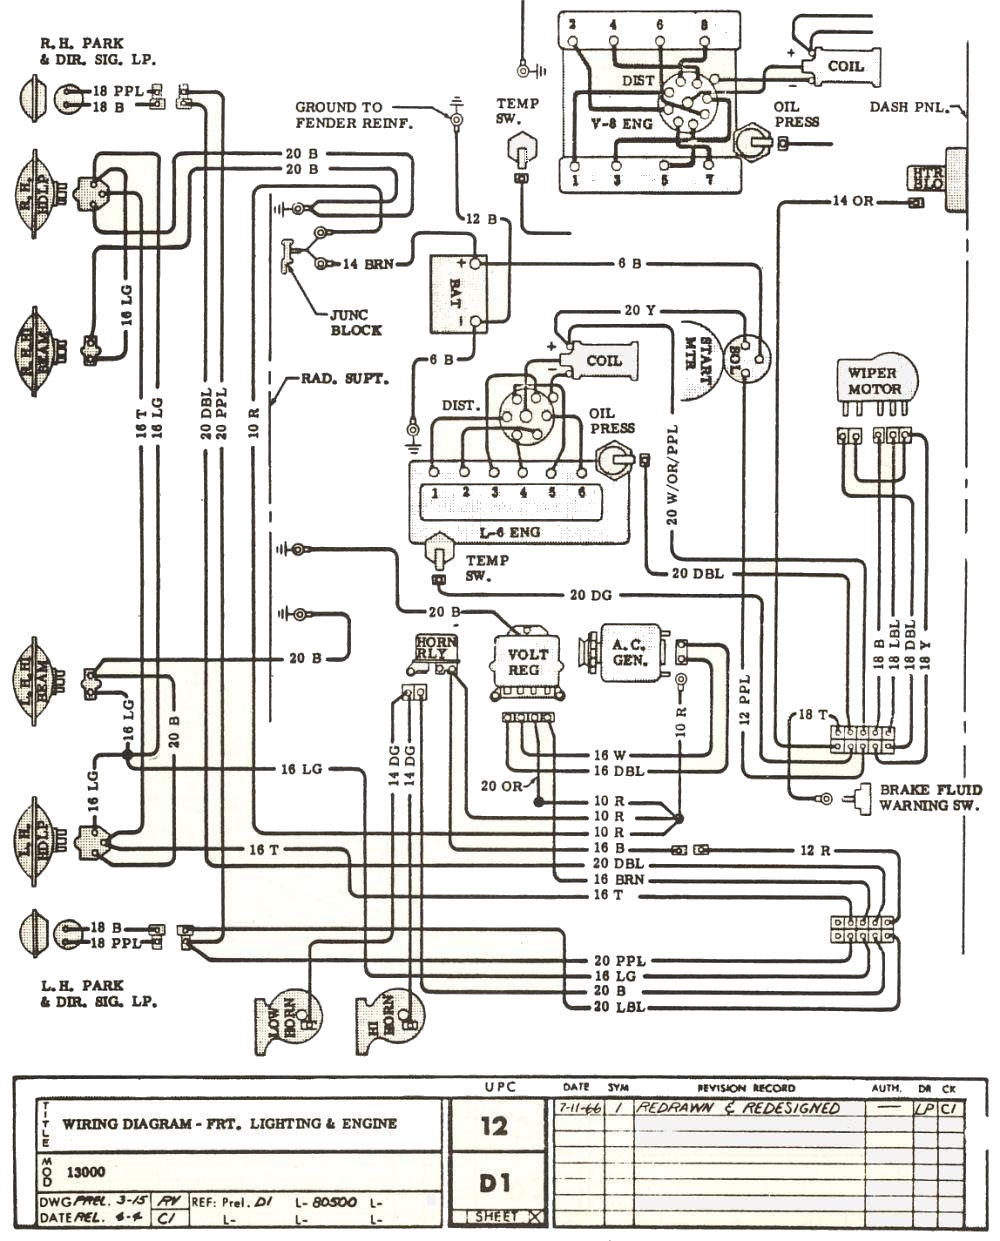 Wiring Diagram For 1966 Chevelle The wiring diagram – 1969 Chevelle Wiring Diagram